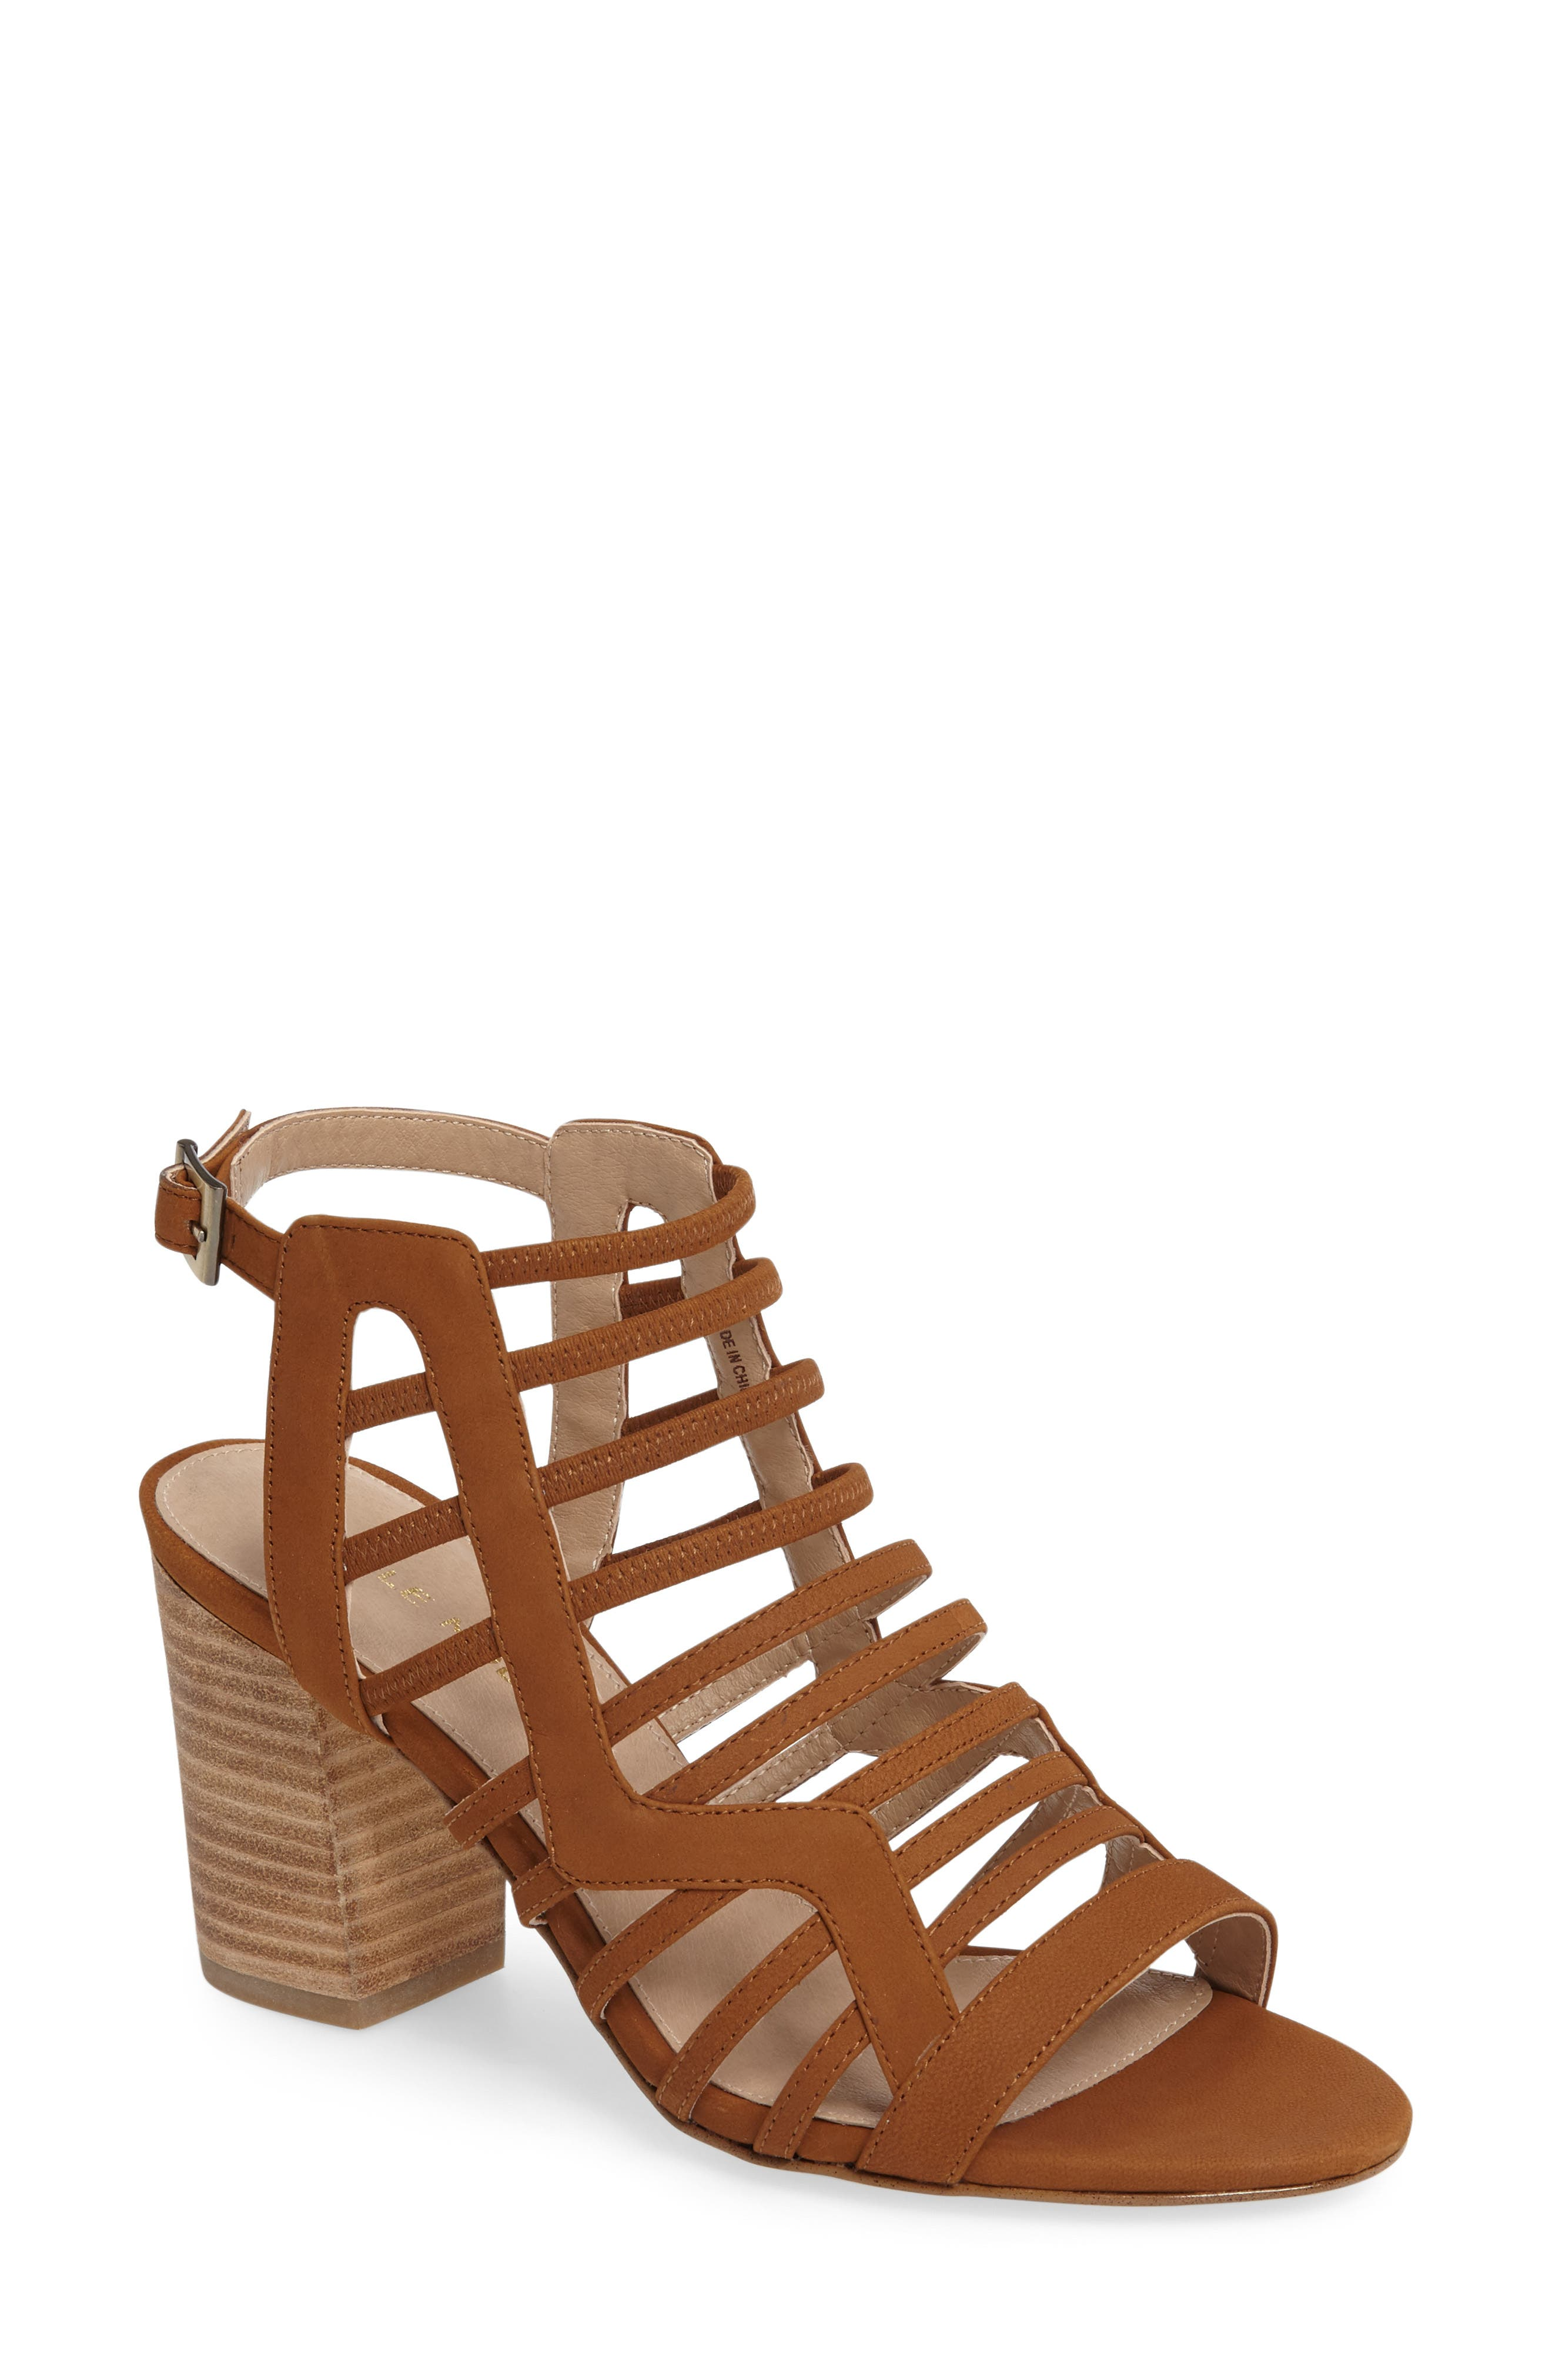 Bonitta Cage Sandal,                         Main,                         color, Luggage Leather